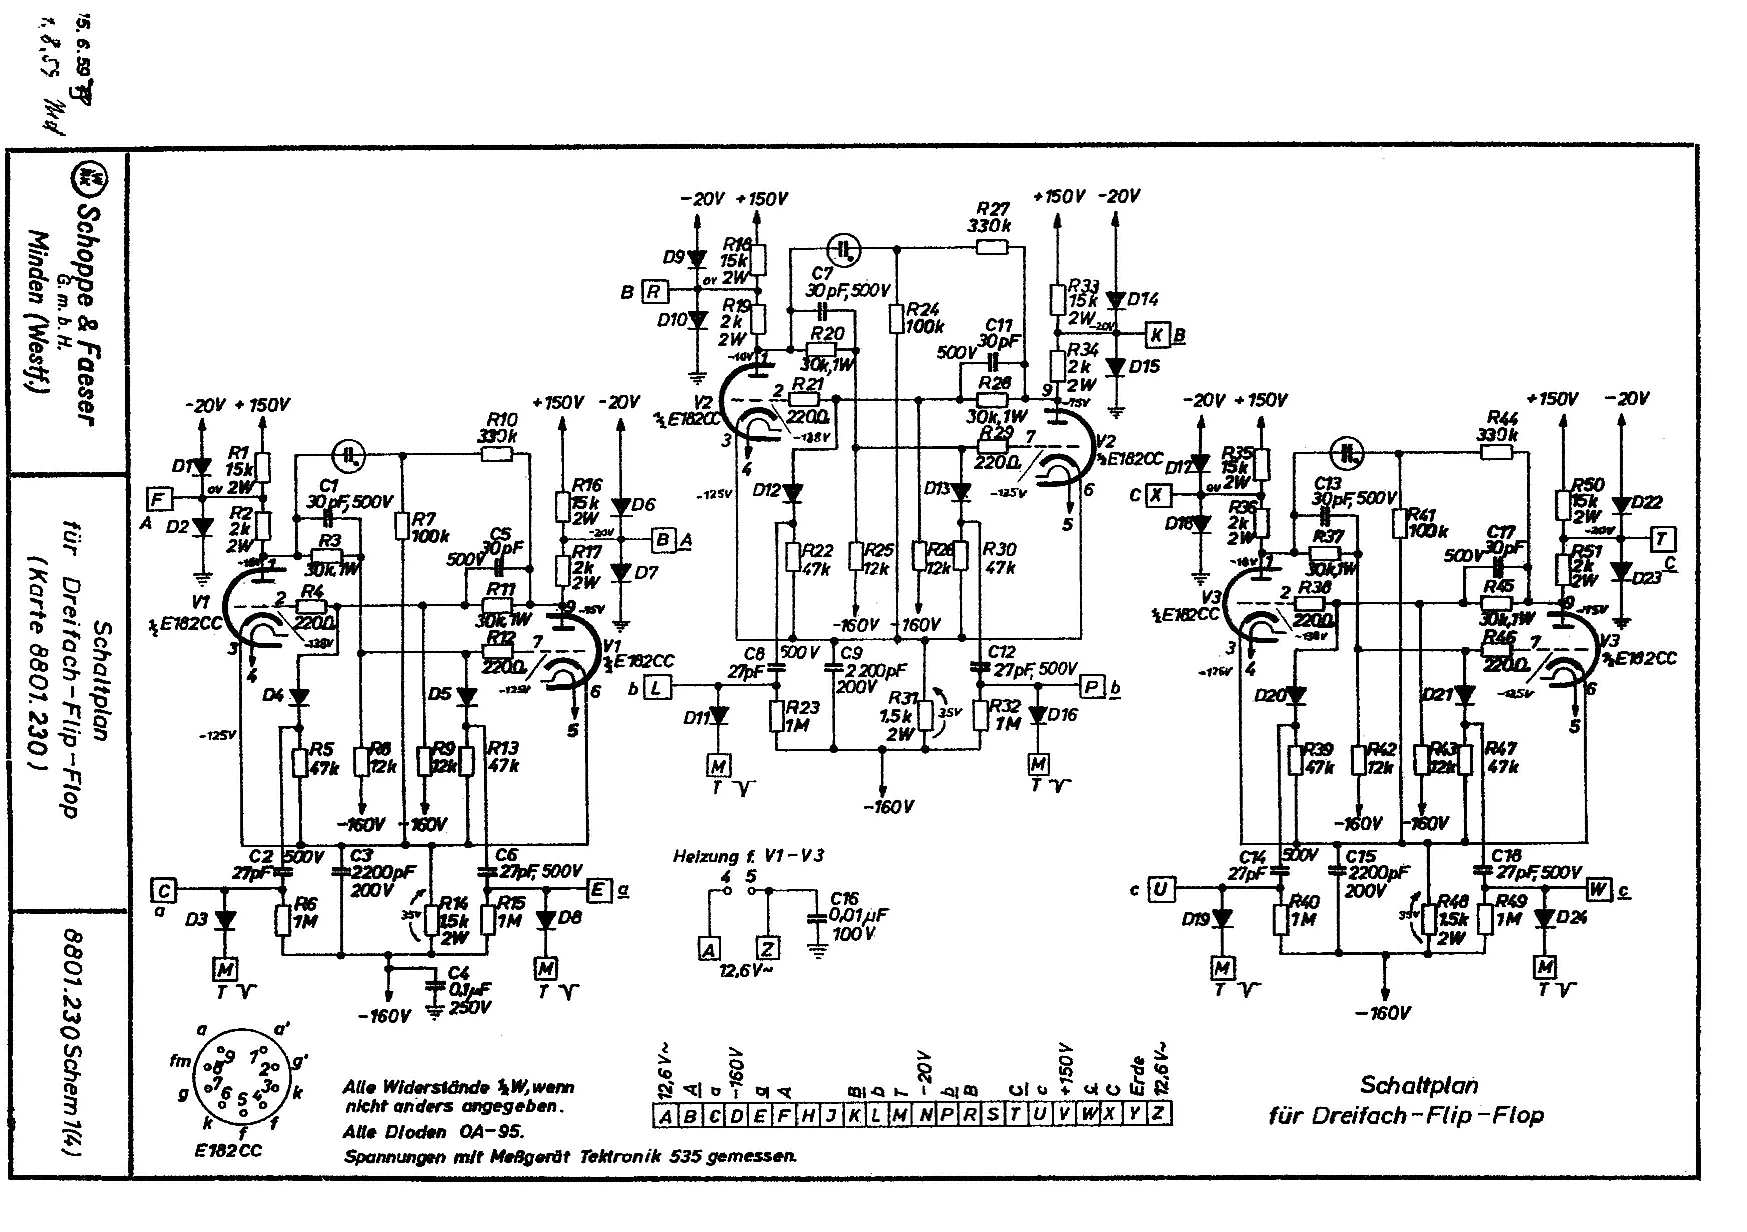 manual bendix ec 30 wiring diagram